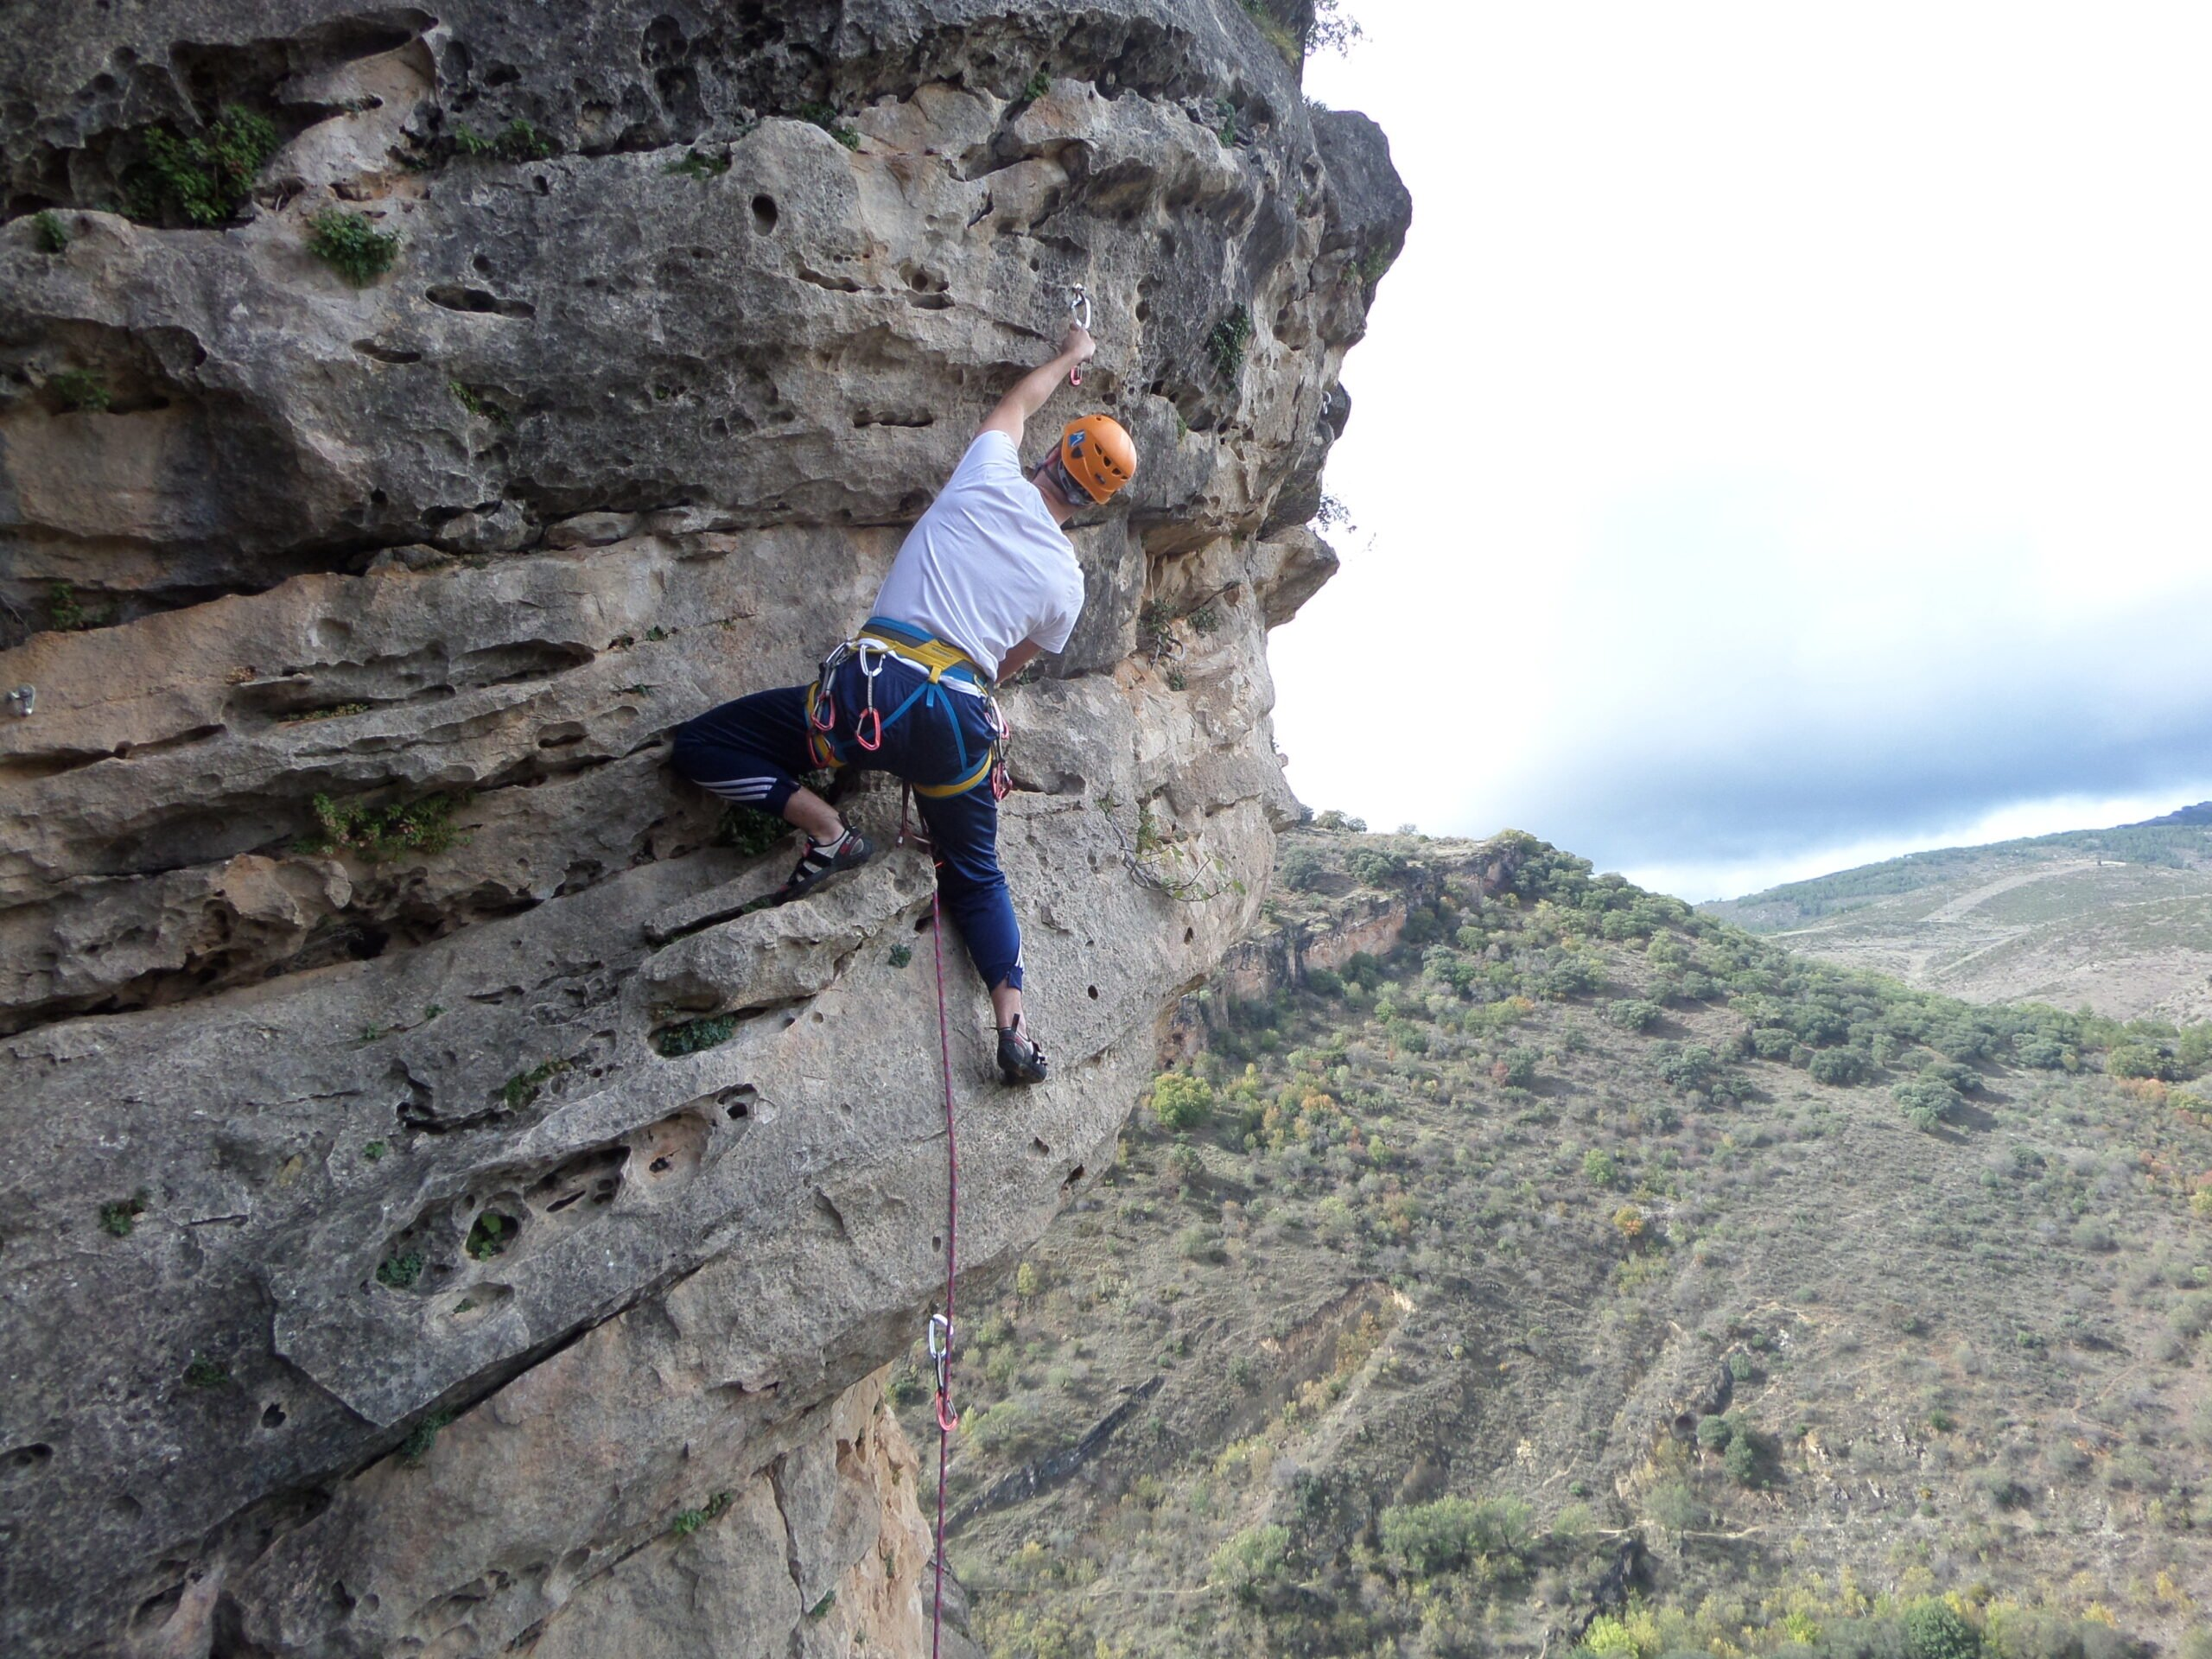 An Exciting Activity In One Of The Most Special Geological Sceneries In Europe In Our Guadarrama National Park Rock Climbing Tour From Madrid